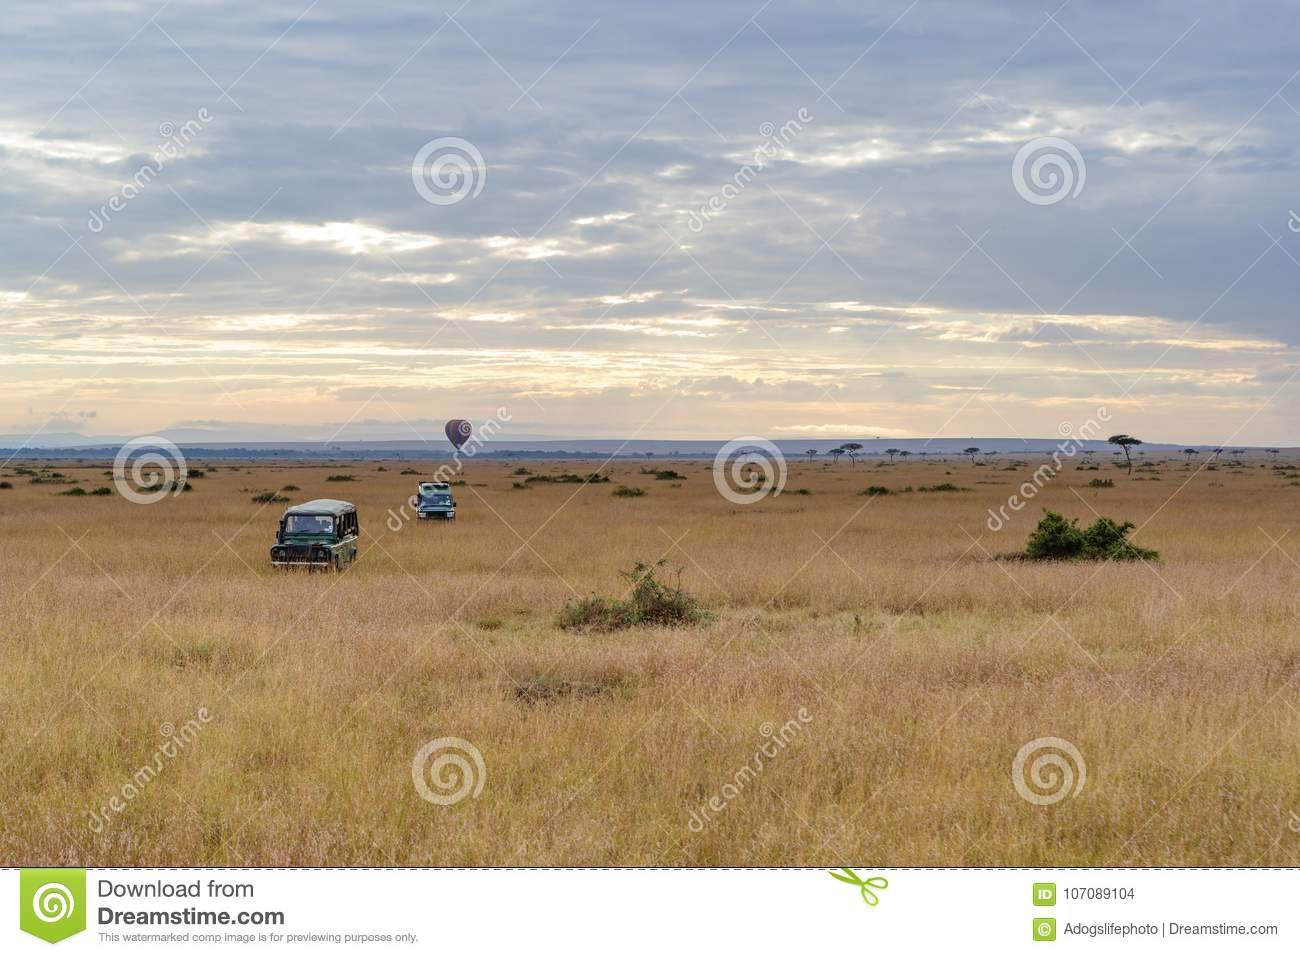 Safari Vehicles In Open Kenya Field Stock Photo - Image of vehicle